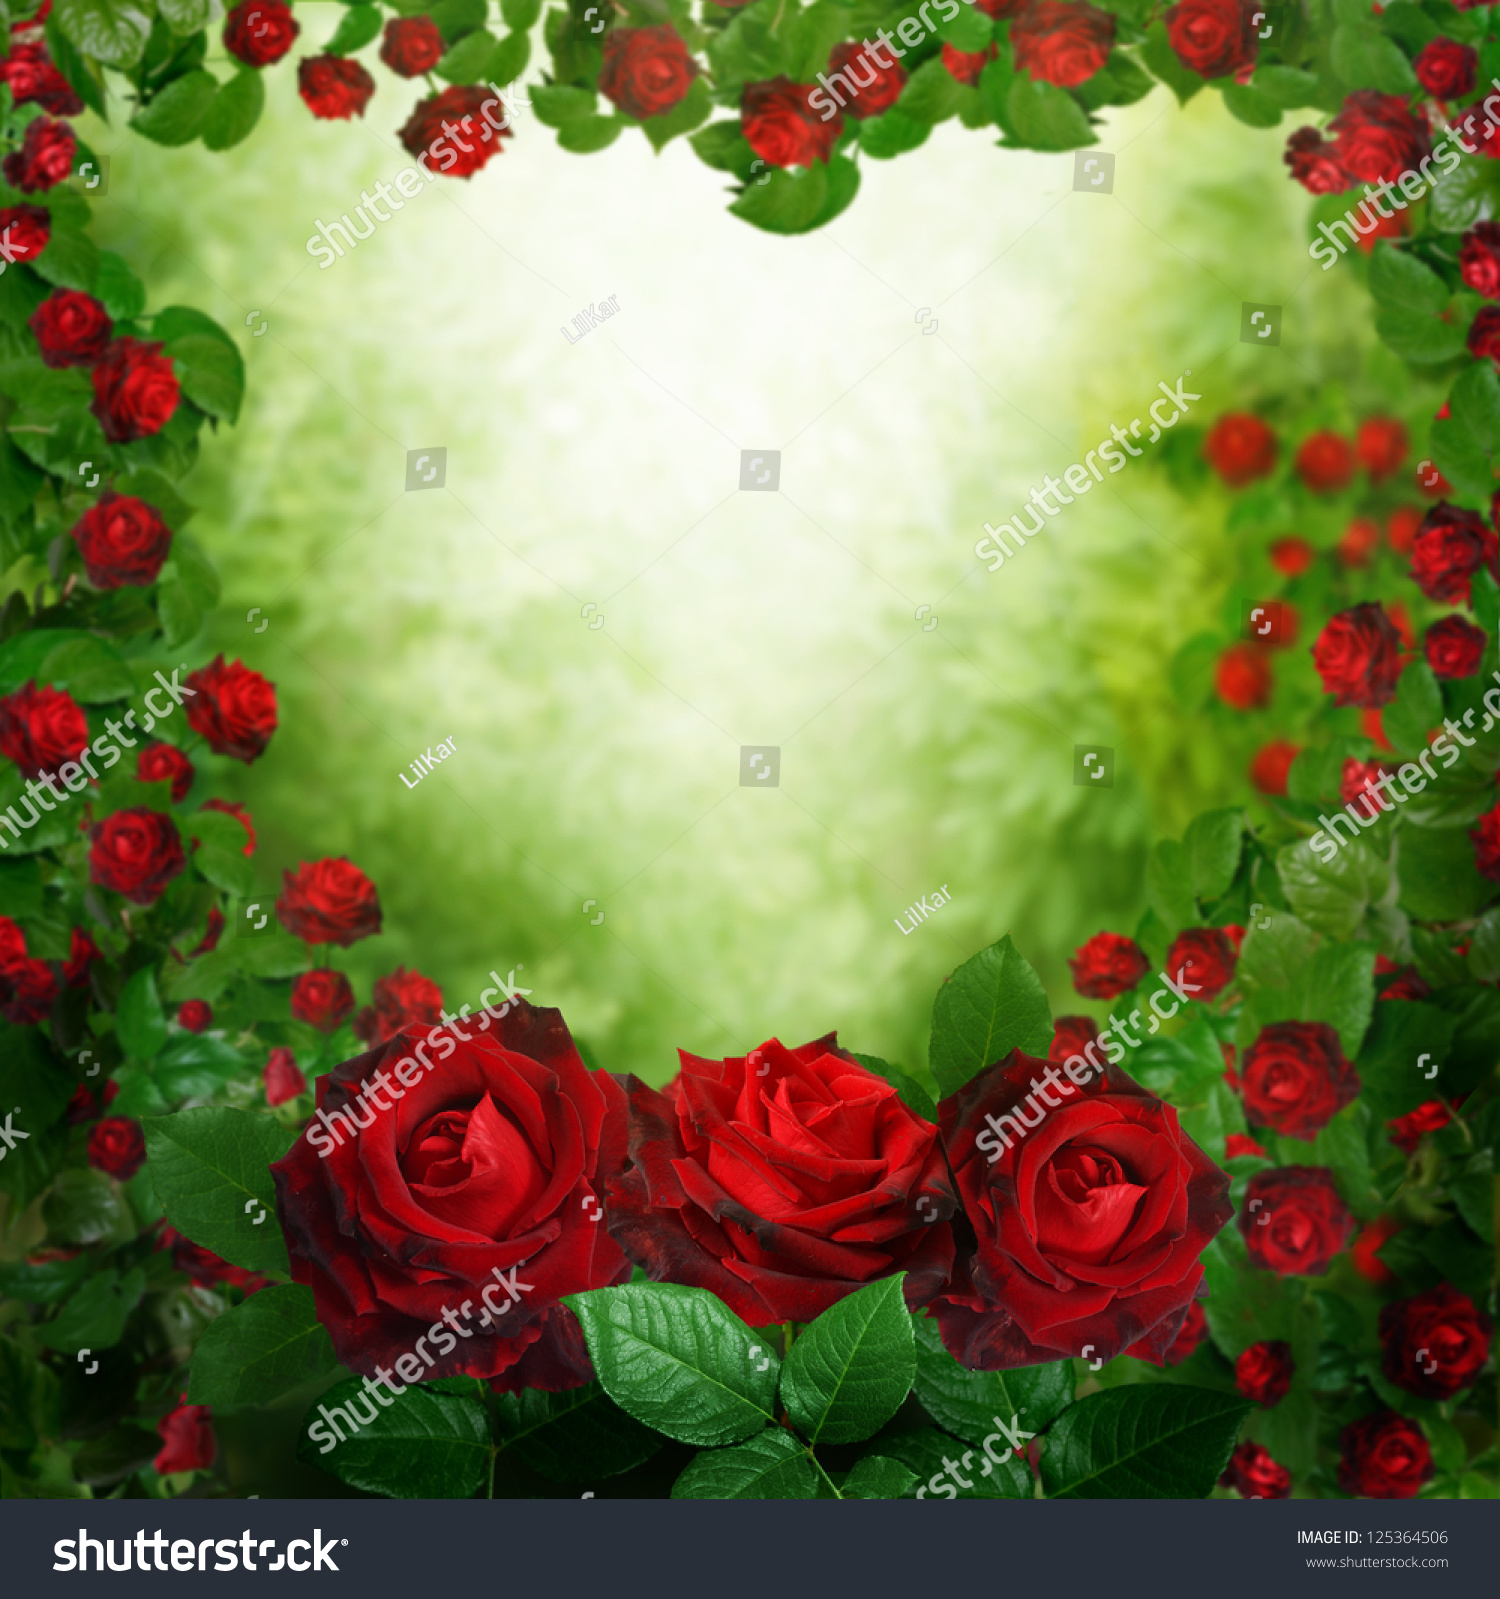 Beautiful Red Roses Background Stock Photo 125364506 - Shutterstock